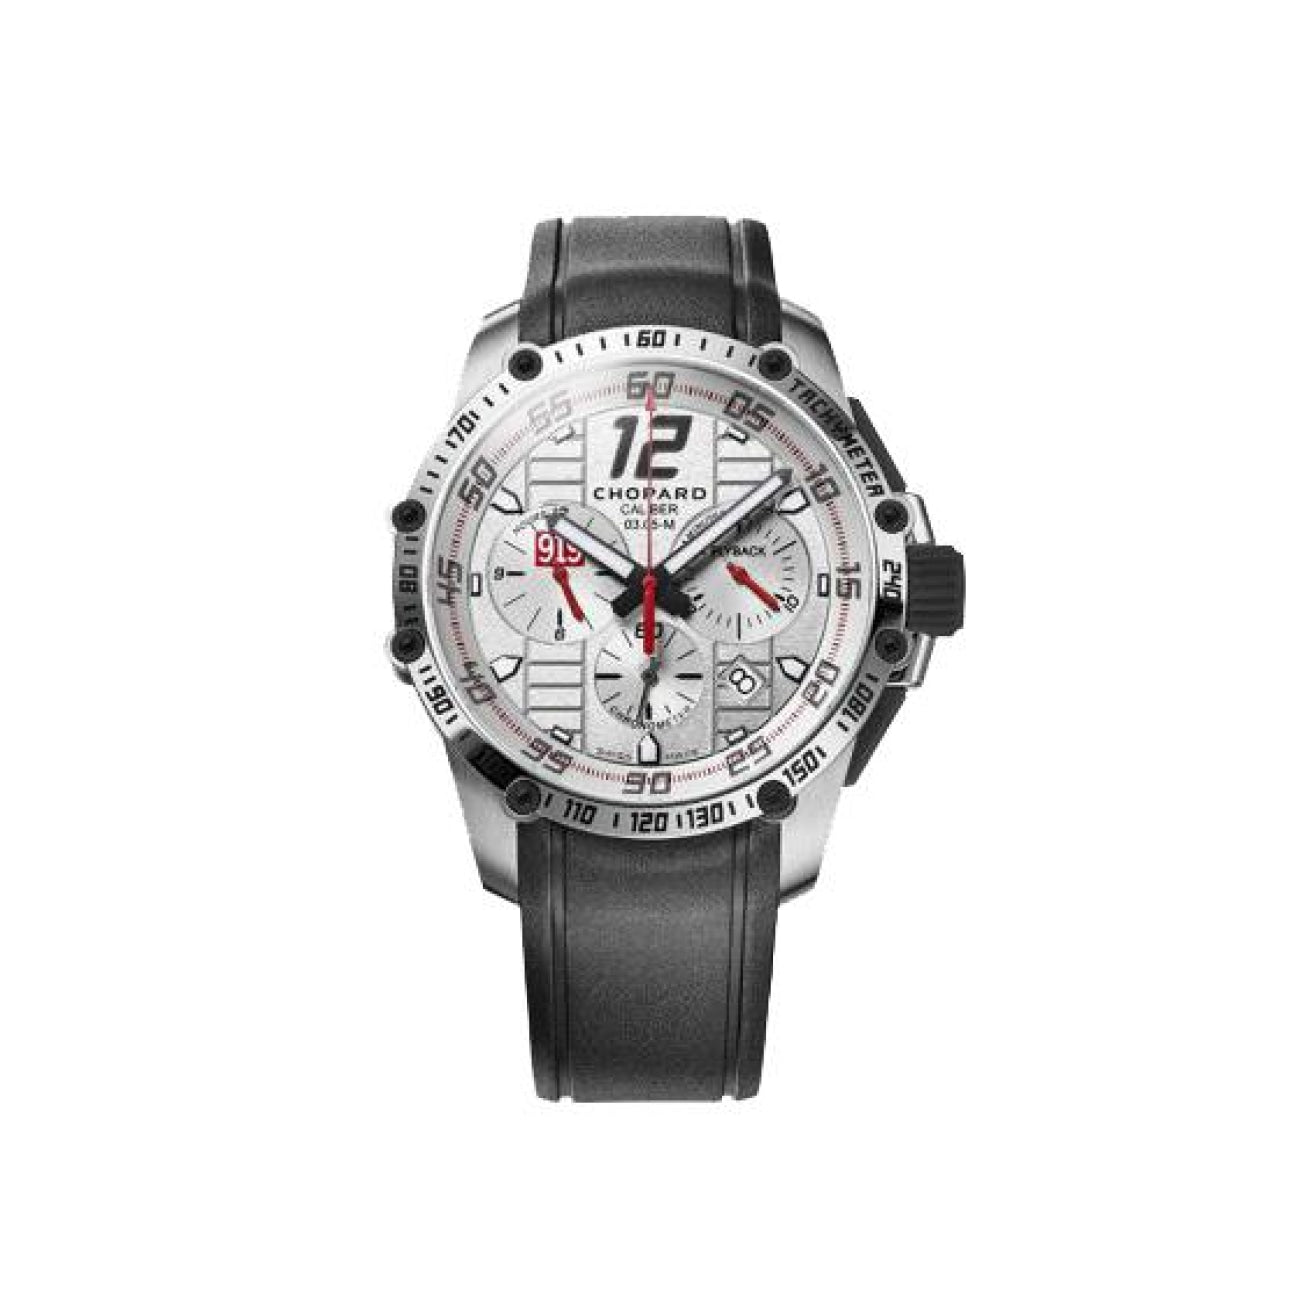 Chopard Watches - SUPERFAST CHRONO | Manfredi Jewels